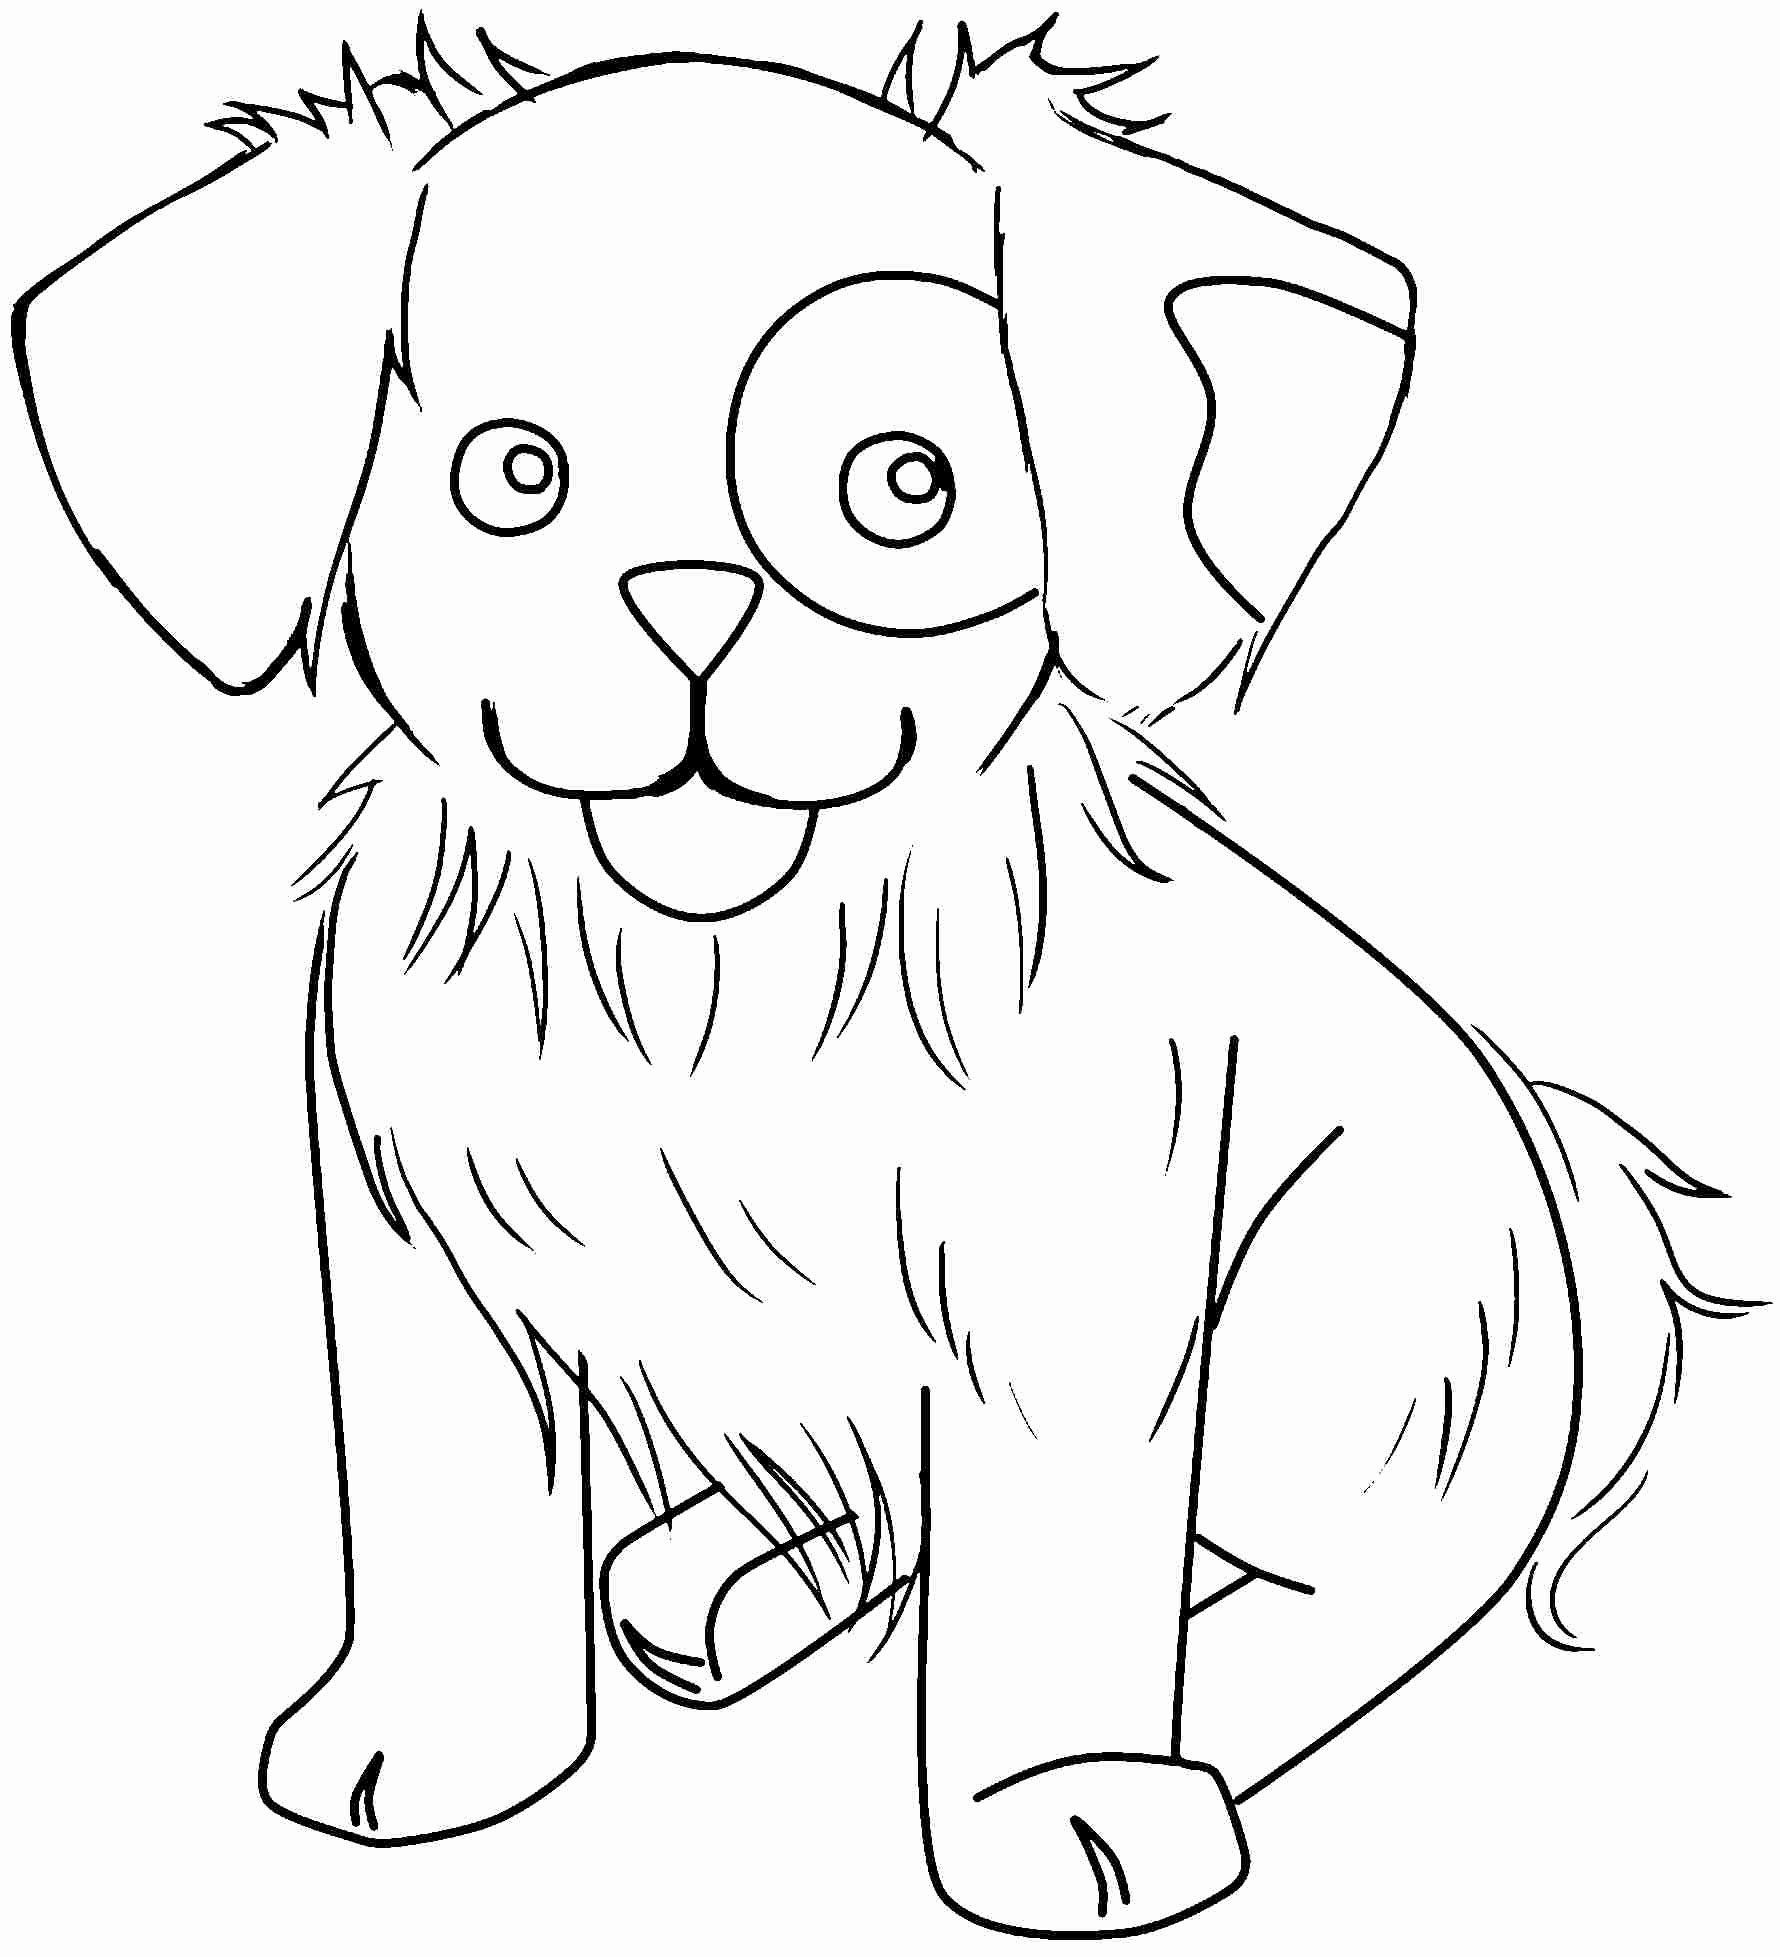 Winter Animals Coloring Pages Inspirational Winter Animals Drawing At Getdrawings Zoo Animal Coloring Pages Zoo Coloring Pages Coloring Pictures Of Animals [ 1957 x 1780 Pixel ]